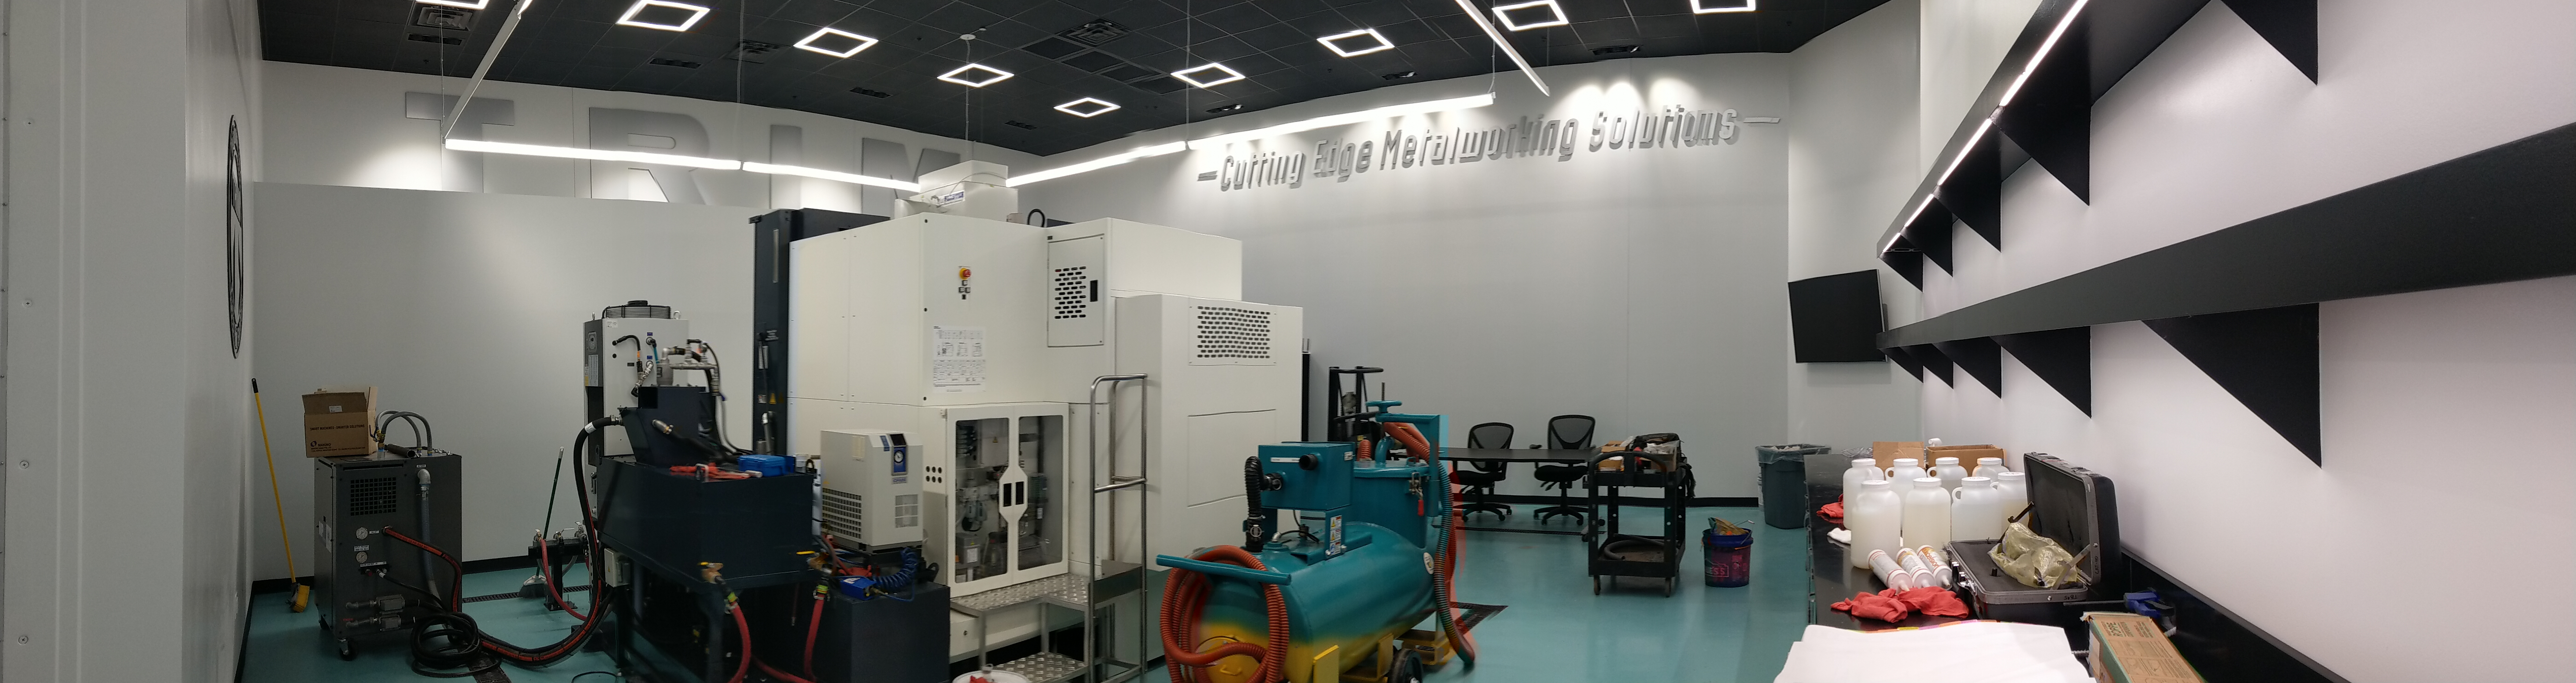 Master Fluid Solutions continues its investment in innovation and future development with the creation of their new Precision Machining Center